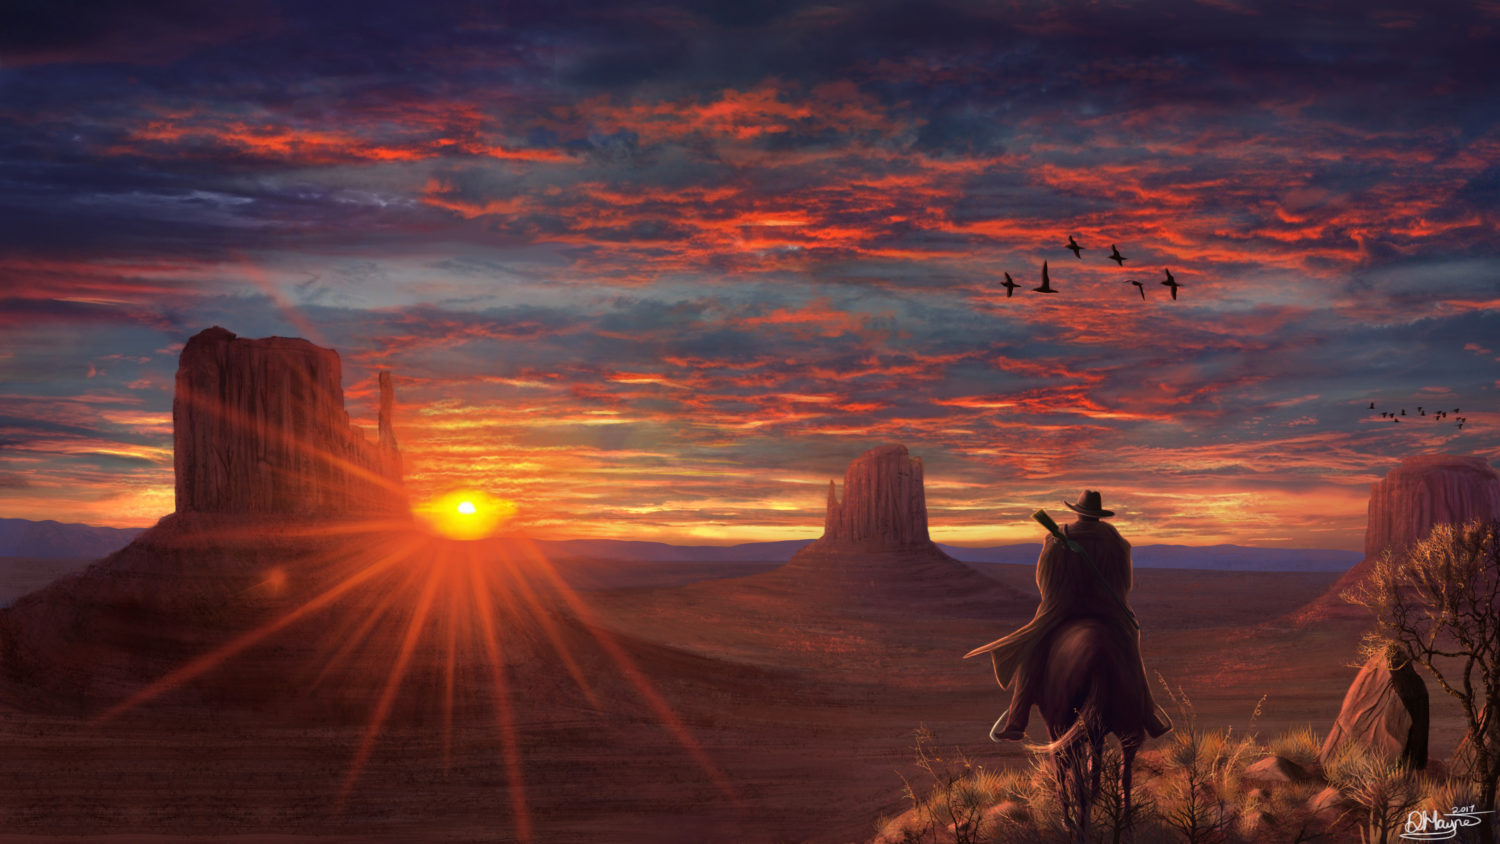 Red Dead Redemption 2 fan art